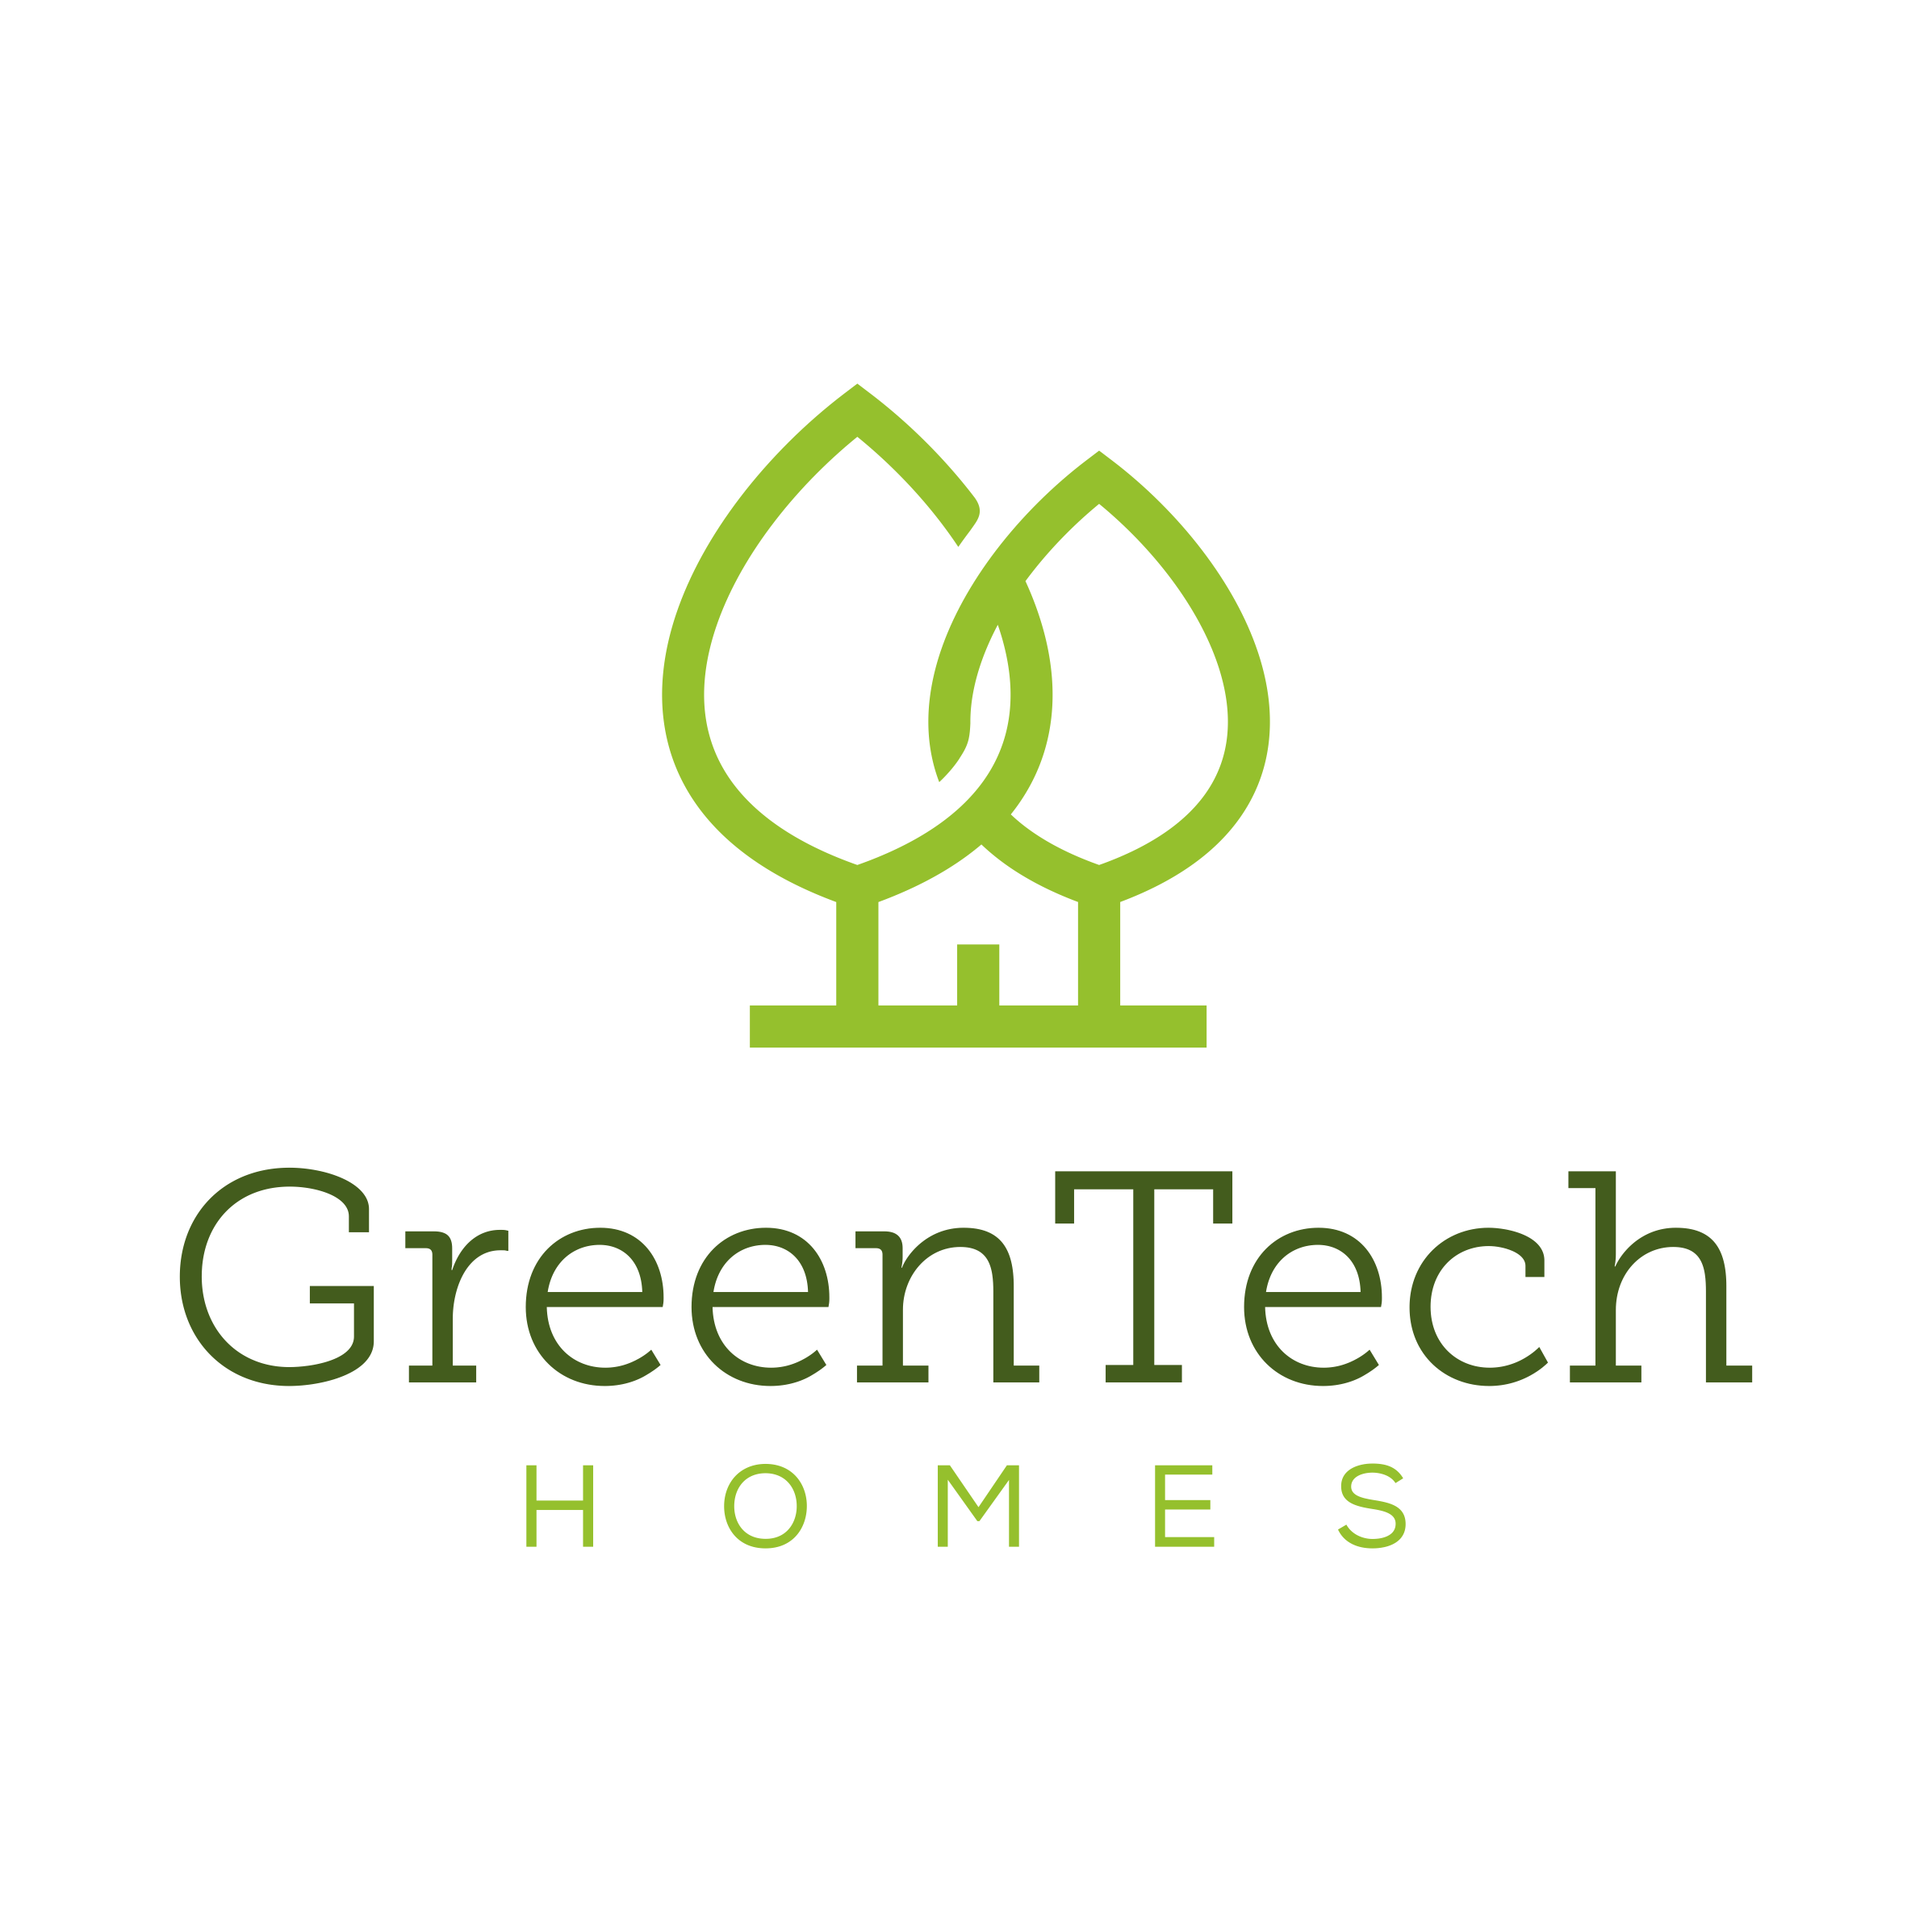 Craft an iconic logo for Greentech Homes